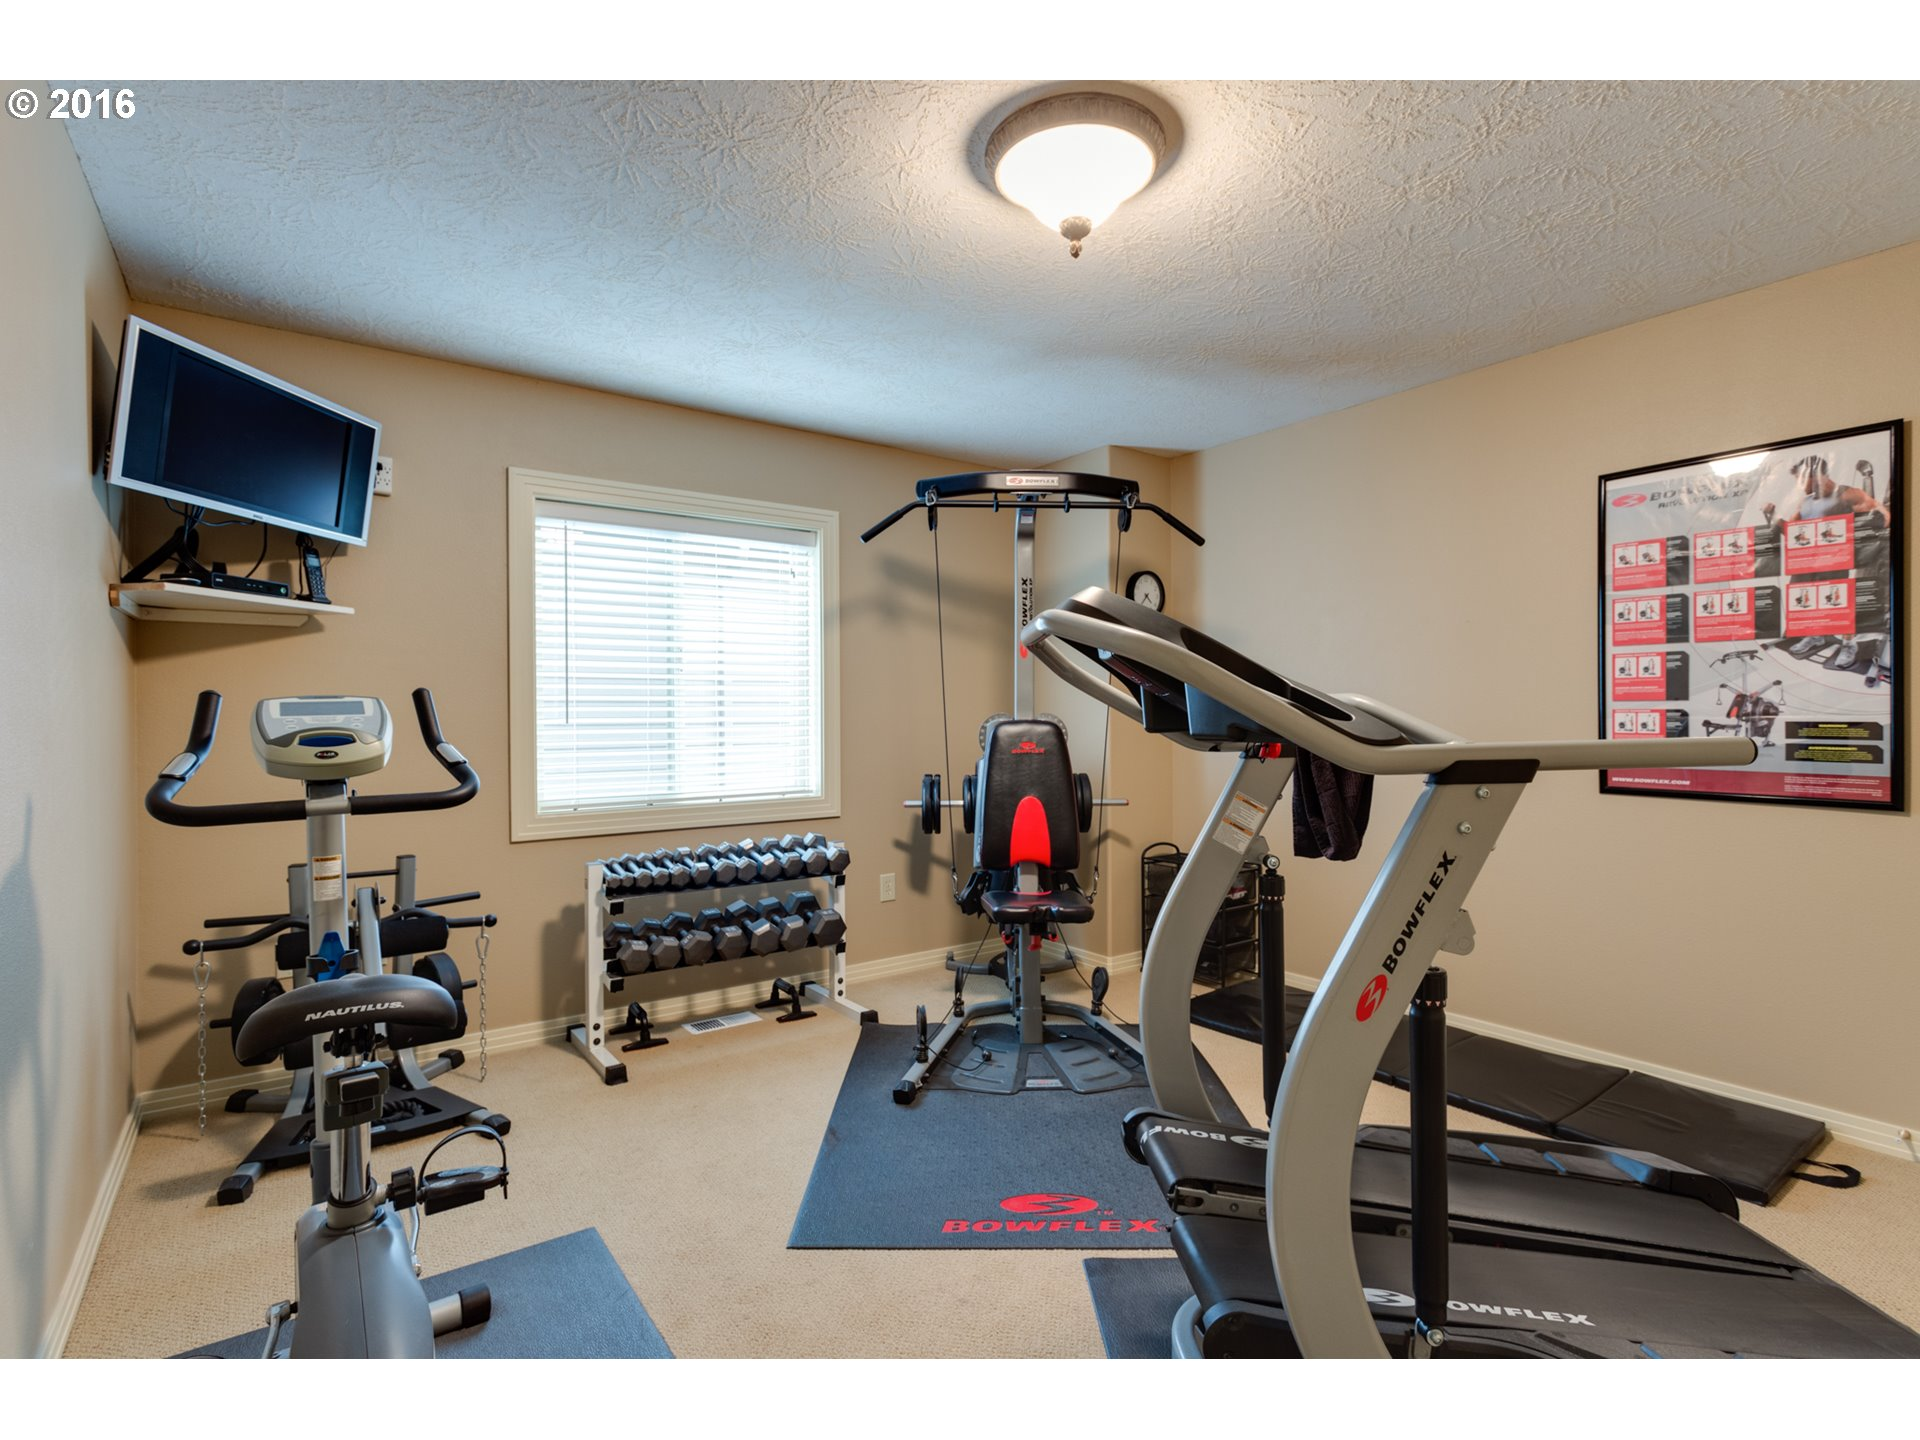 EXERCISE ROOM MATT MORRIS 360-773-7333